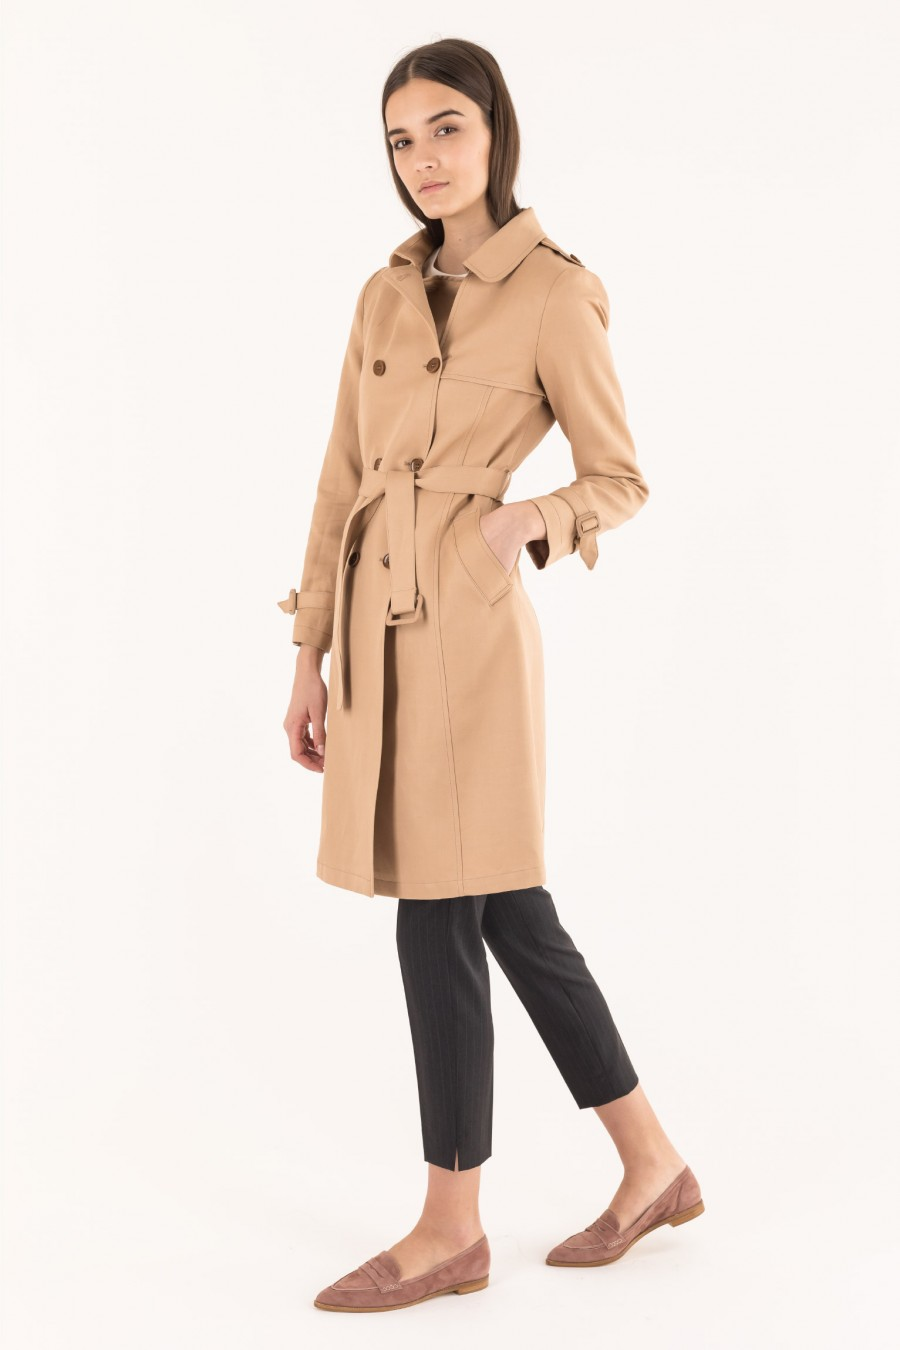 Lined beige trench